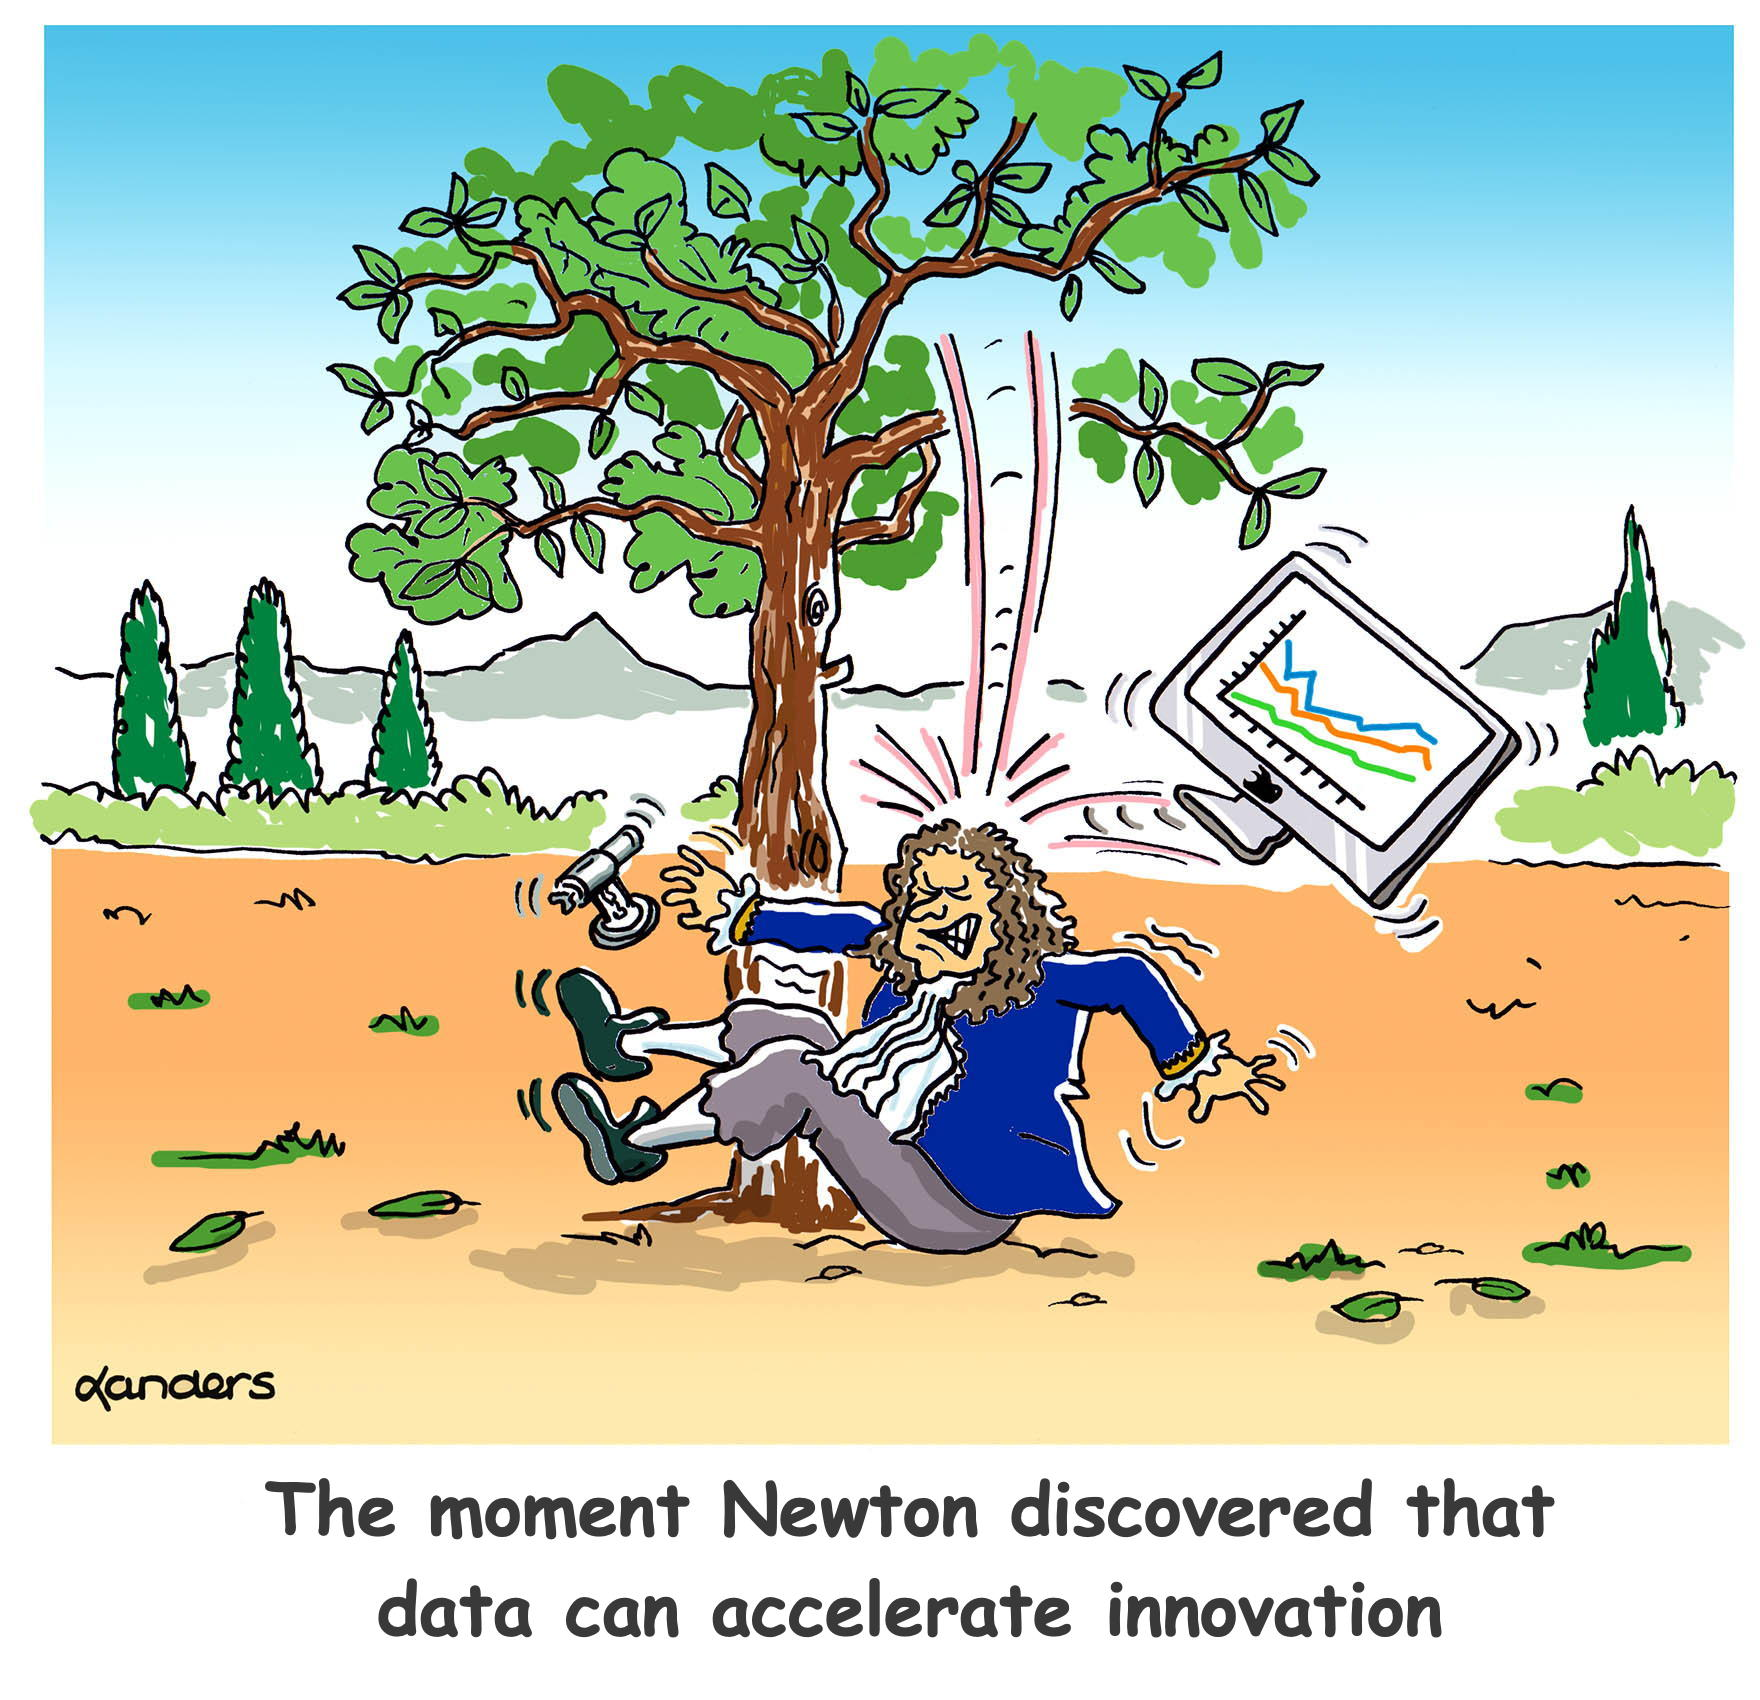 Cartoon with Isaac Newton apple tree fable (but apple is a computer)